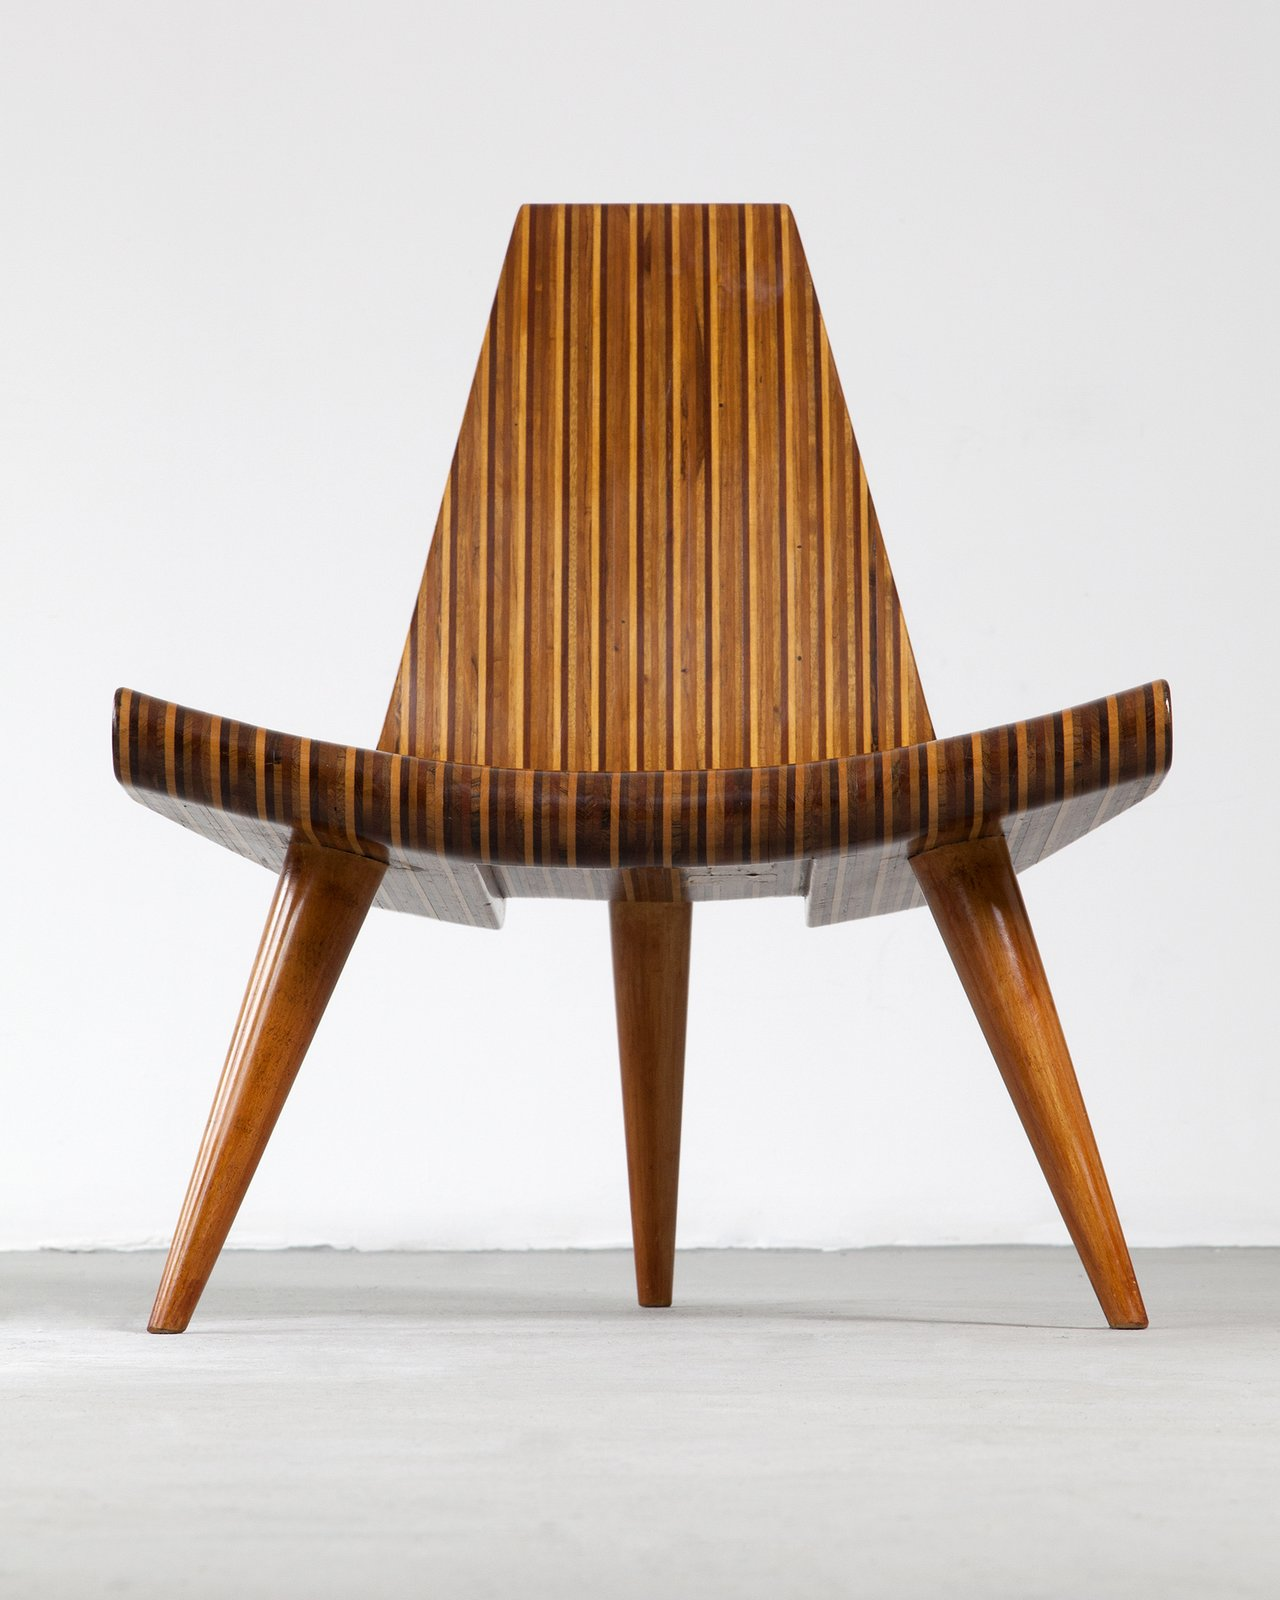 Widely consider the first modern master of Brazilian design, Joaquim Tenreiro created many timeless classics. His contribution to Brazilian design is evident by his designs that made hardwood furniture sleeker and lighter. Tenreiro's 1947 Three-Legged chair was laminated in multiple woods that included native species such as imbuia, roxinho, jacaranda, ivory, and cabreúa. In this example, the chair is made in five different types of hard wood, with bonded laminated. The chair celebrates the material with its inventive form and combinations of wood.  100+ Best Modern Seating Designs by Dwell from Bring the Best of Brazilian Modernism to Your Home with This New Book